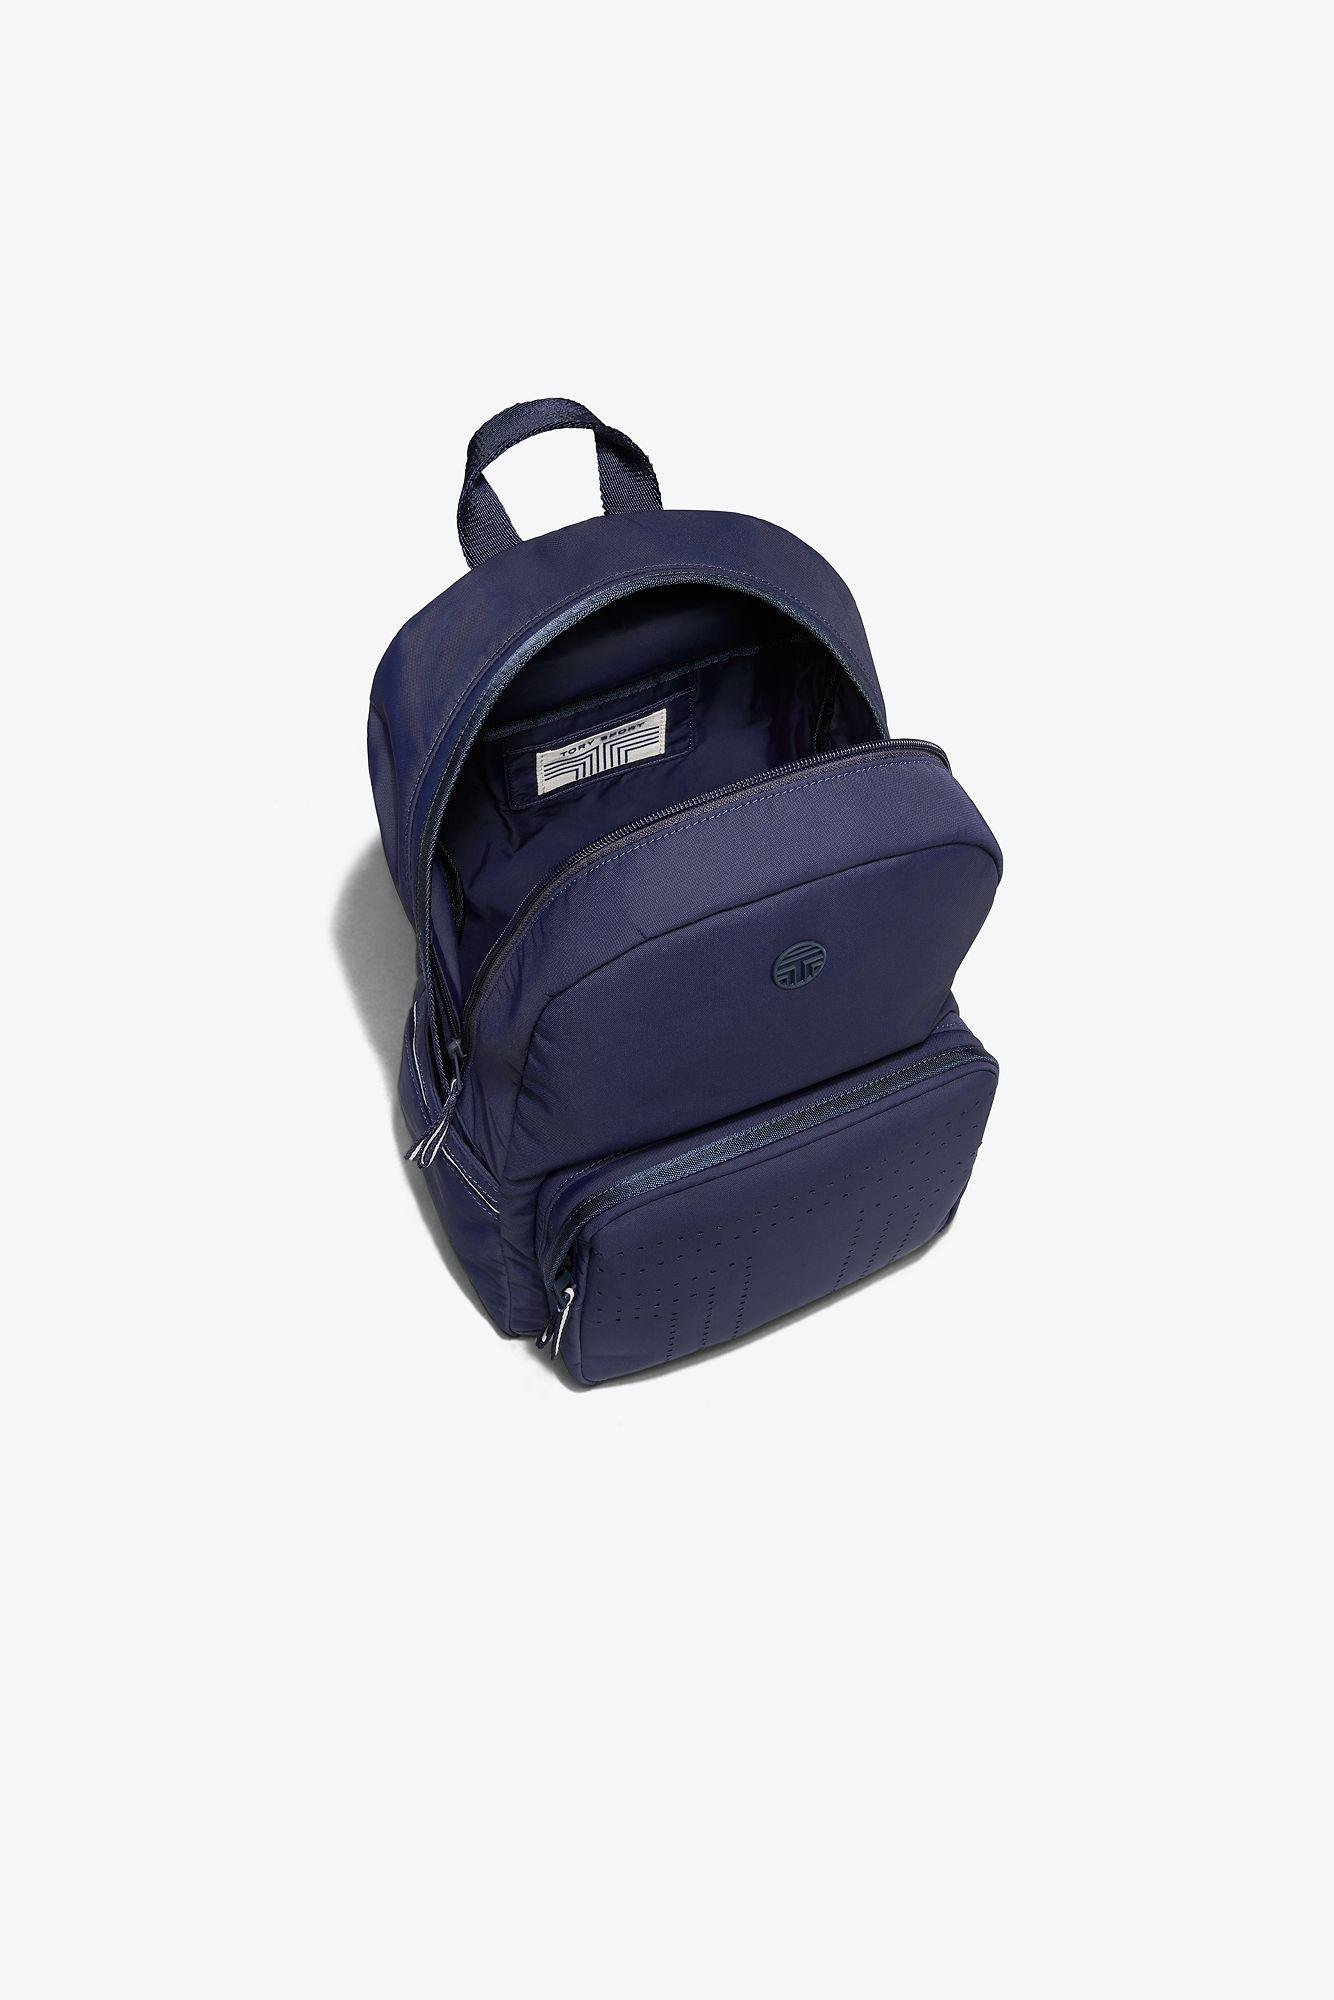 8b12aa9e92f Lyst - Tory Sport Tory Burch Perforated Backpack in Blue